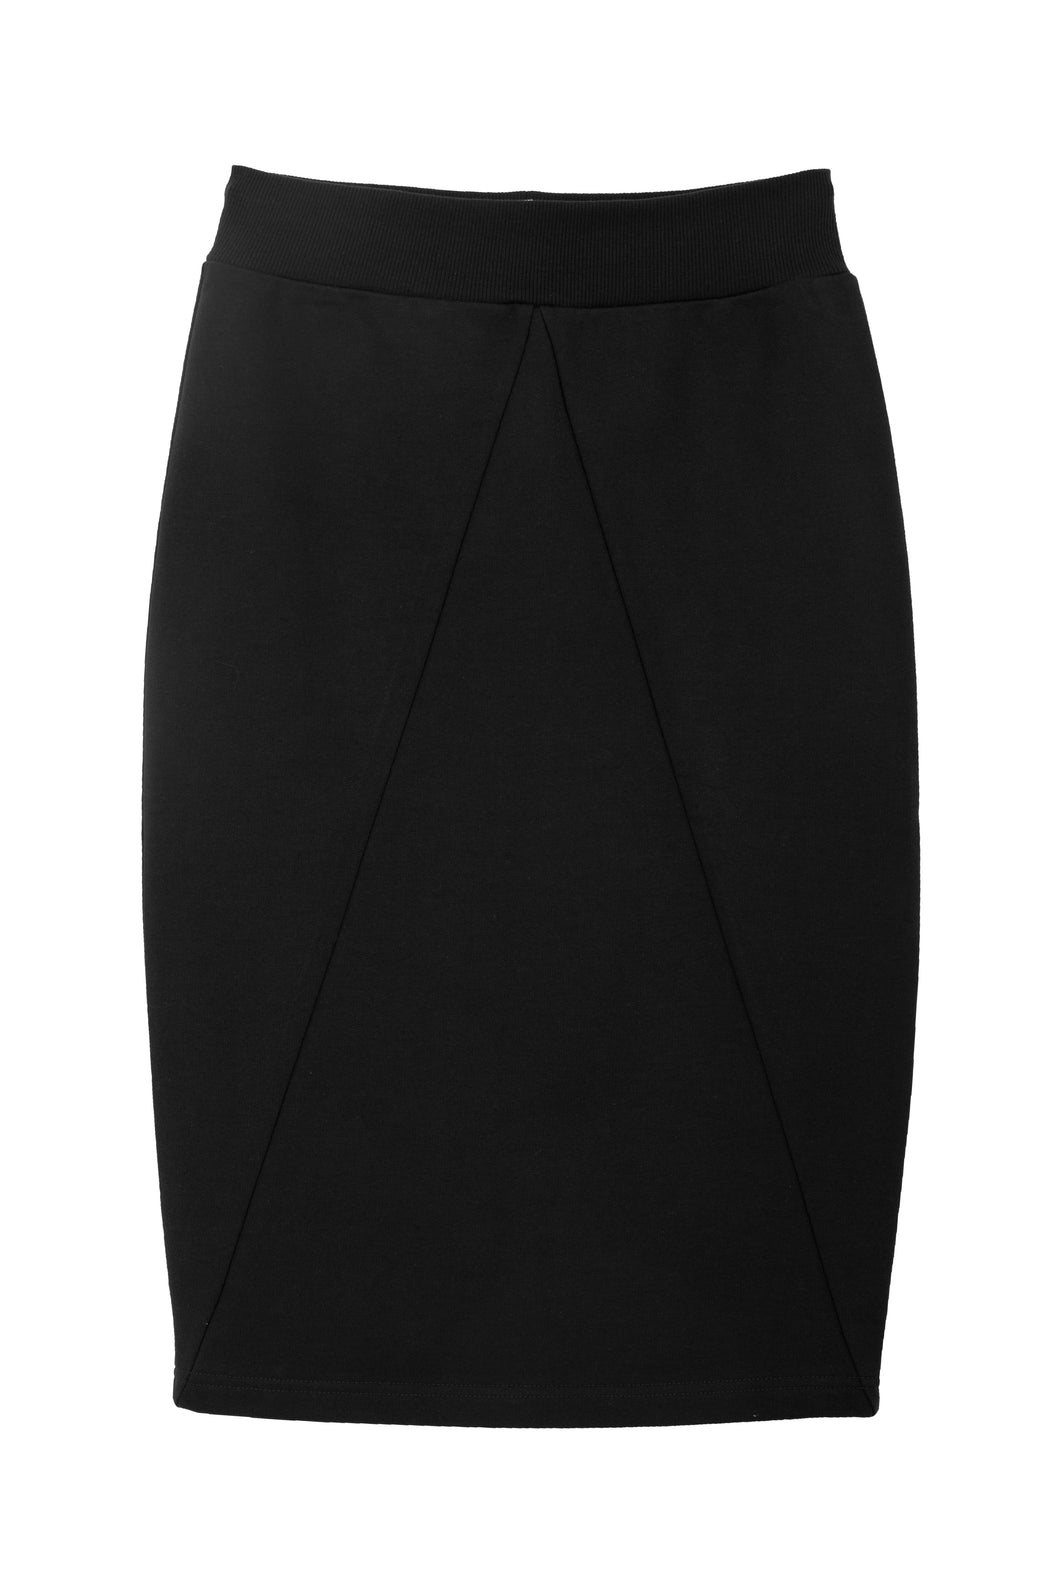 The Tova skirt - Black